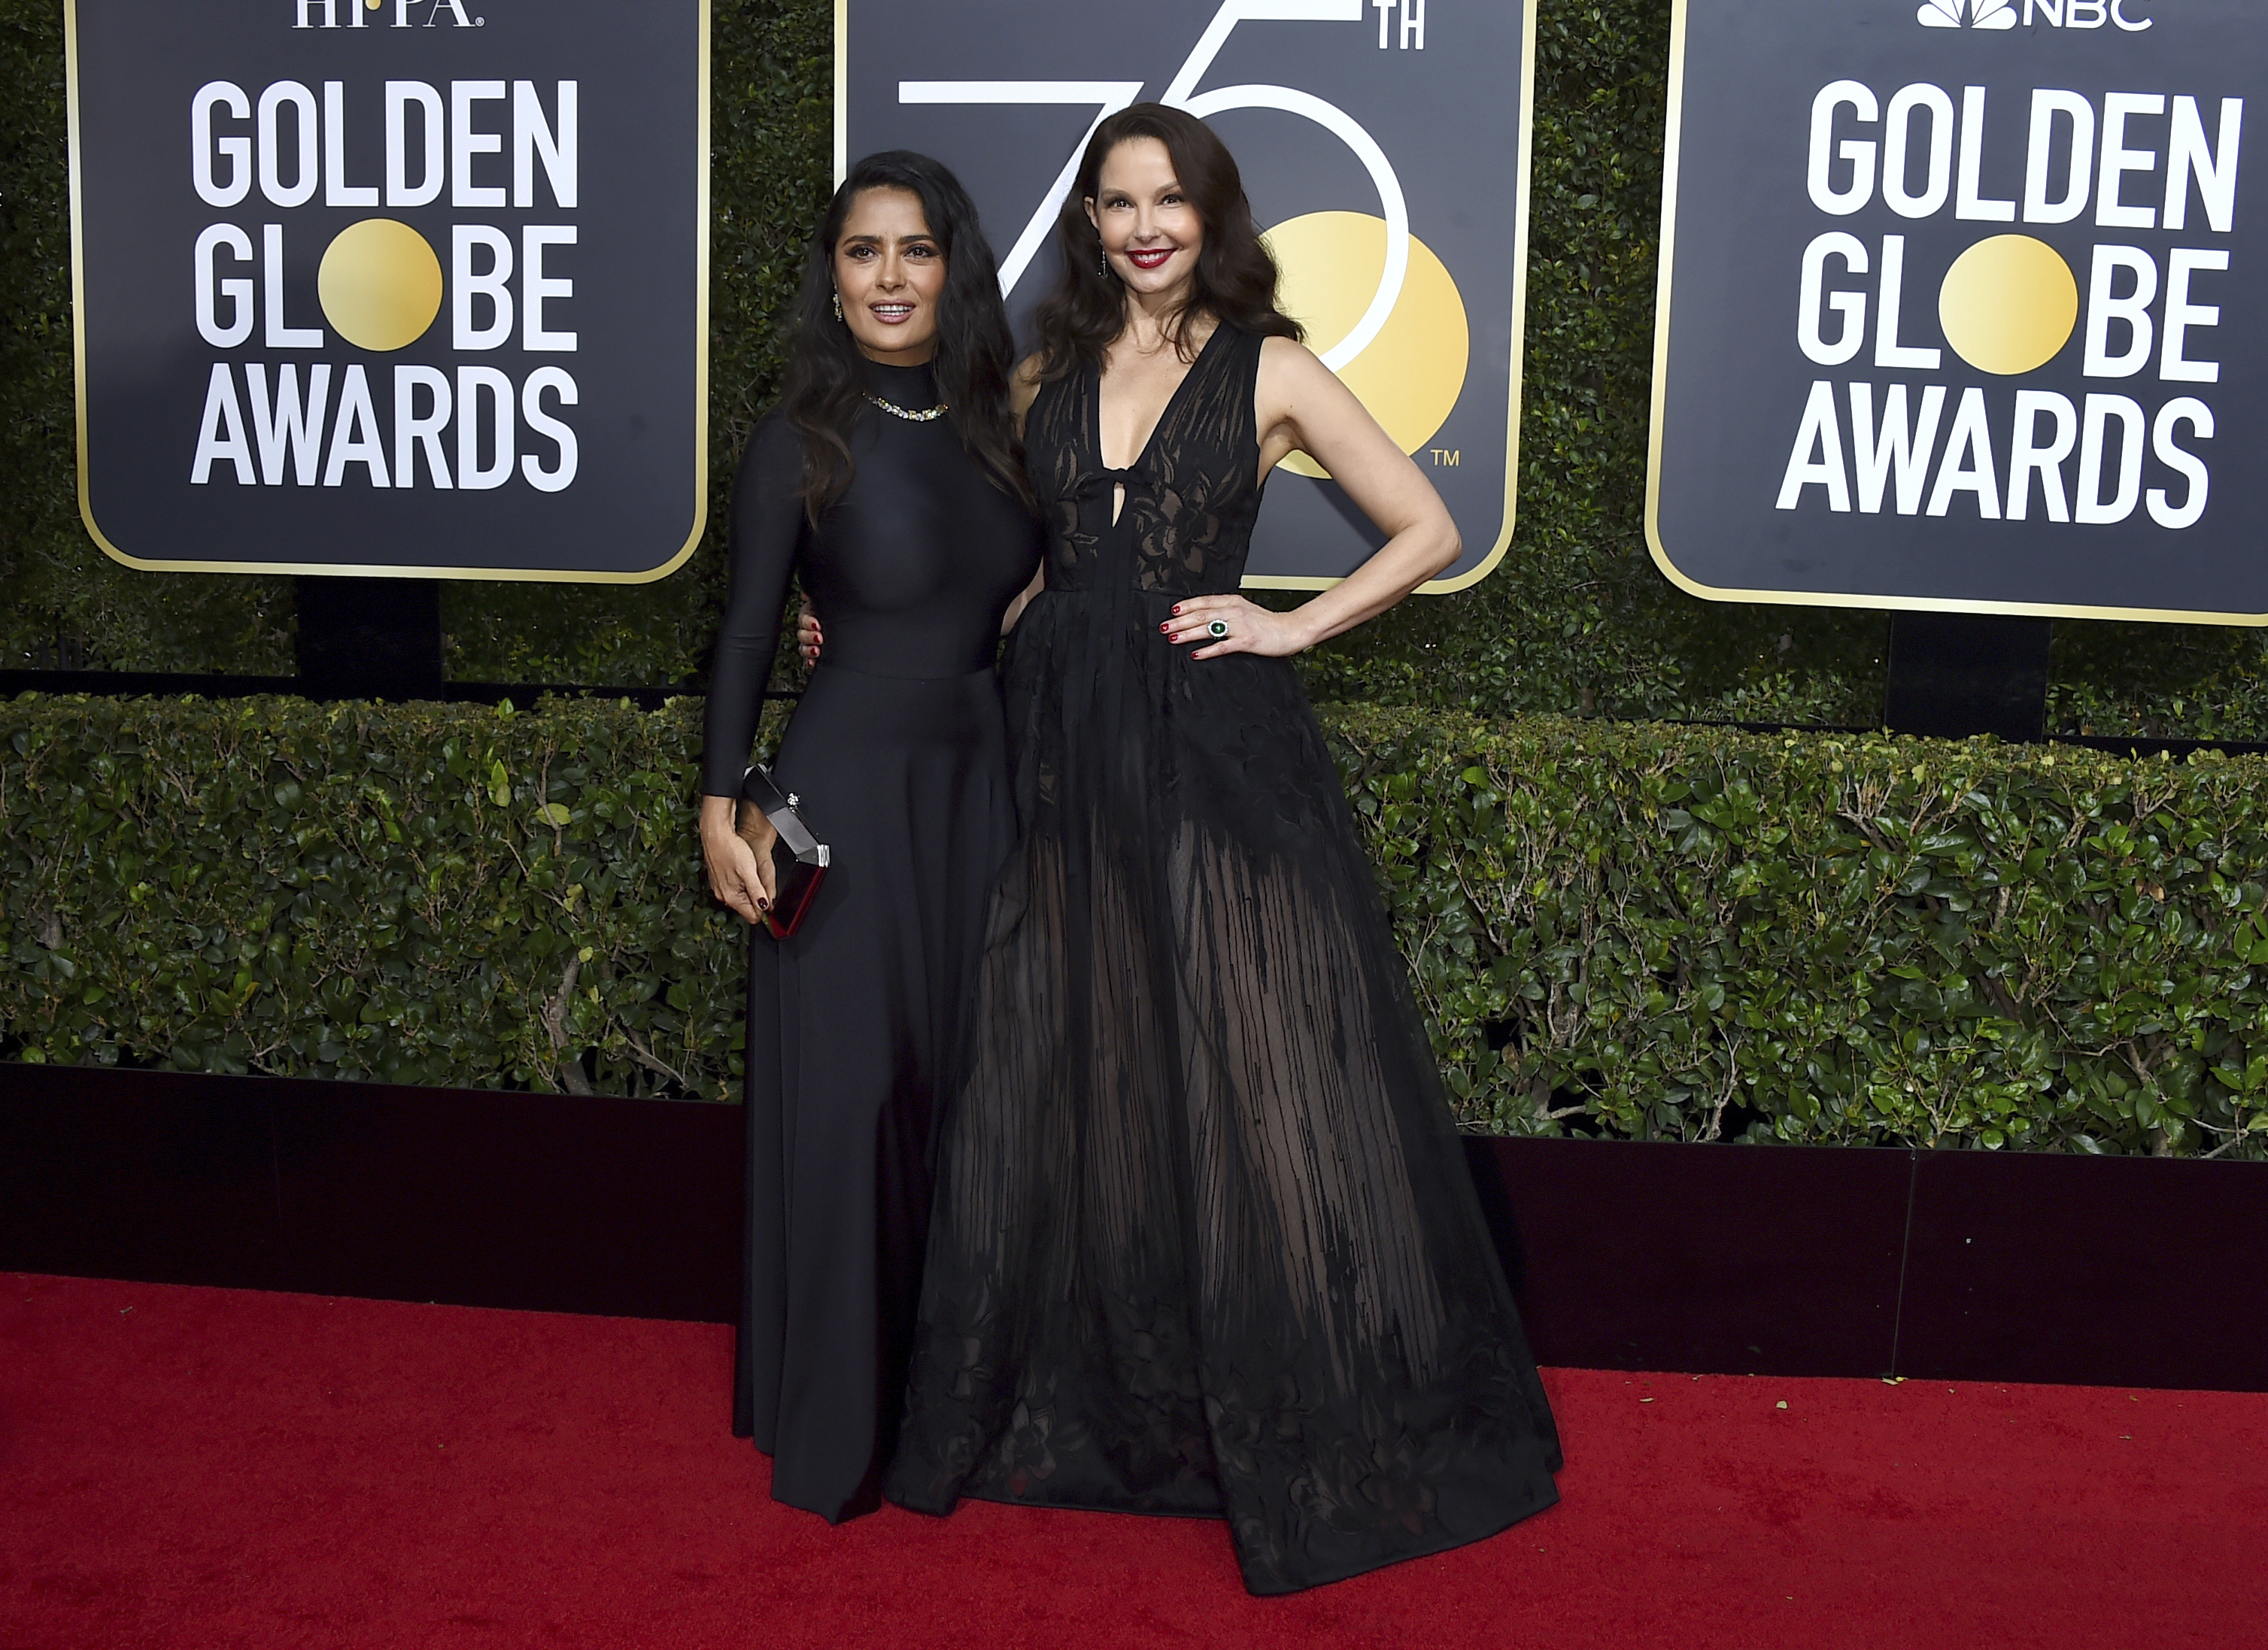 <div class='meta'><div class='origin-logo' data-origin='AP'></div><span class='caption-text' data-credit='Jordan Strauss/Invision/AP'>Salma Hayek, left, and Ashley Judd arrive at the 75th annual Golden Globe Awards at the Beverly Hilton Hotel on Sunday, Jan. 7, 2018, in Beverly Hills, Calif.</span></div>